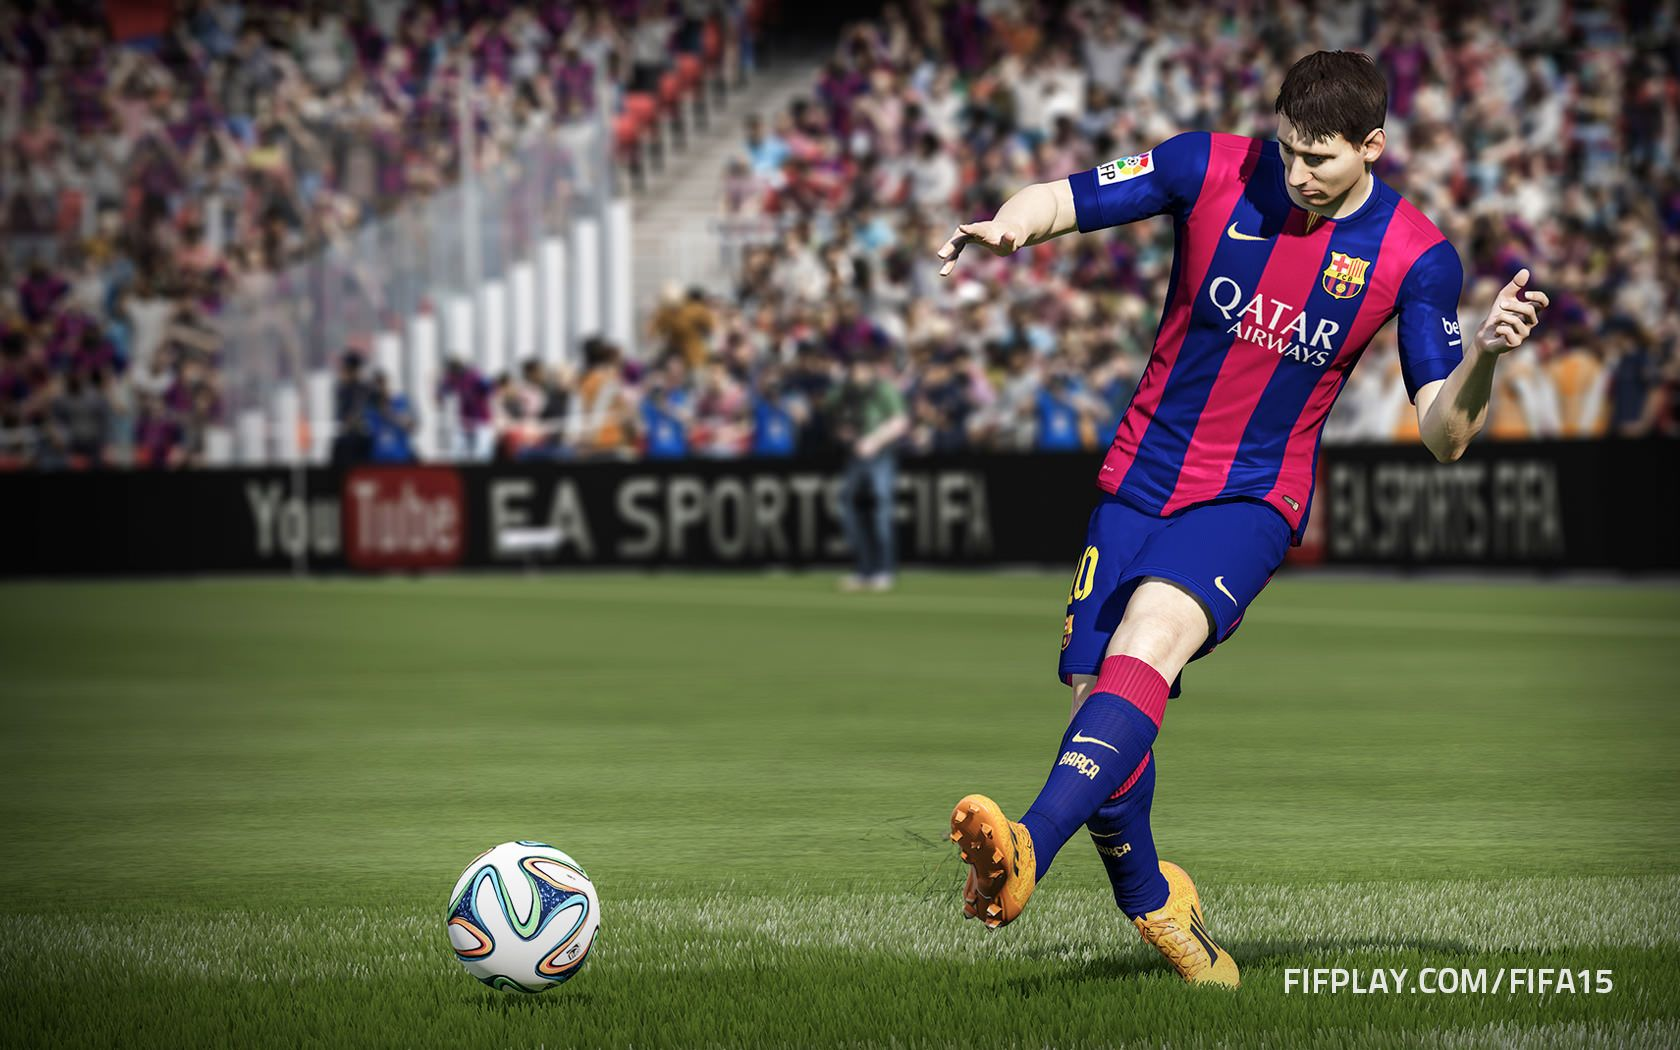 Undefined fifa 2017 wallpapers 47 wallpapers adorable undefined fifa 2017 wallpapers 47 wallpapers adorable wallpapers voltagebd Gallery